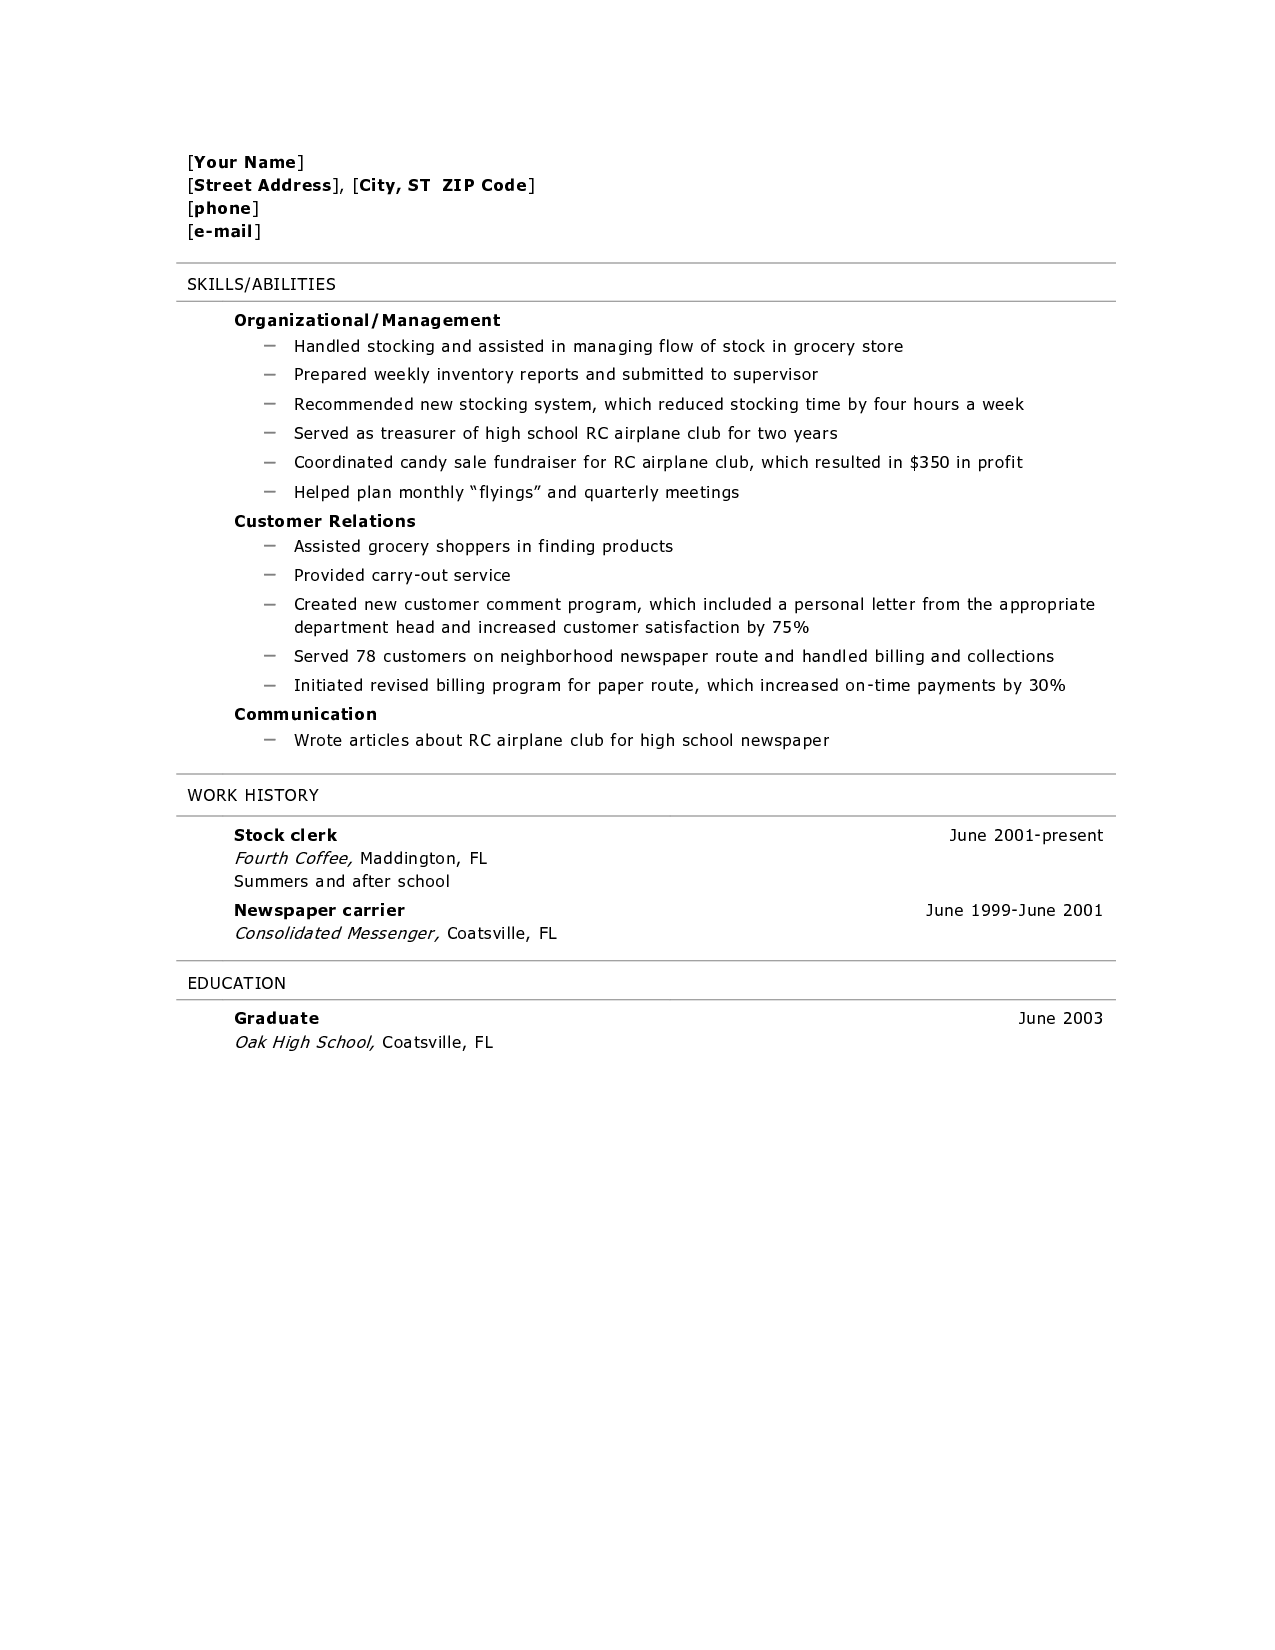 Resume For High School Graduates Resume For High School Graduate Resume Builder Resume